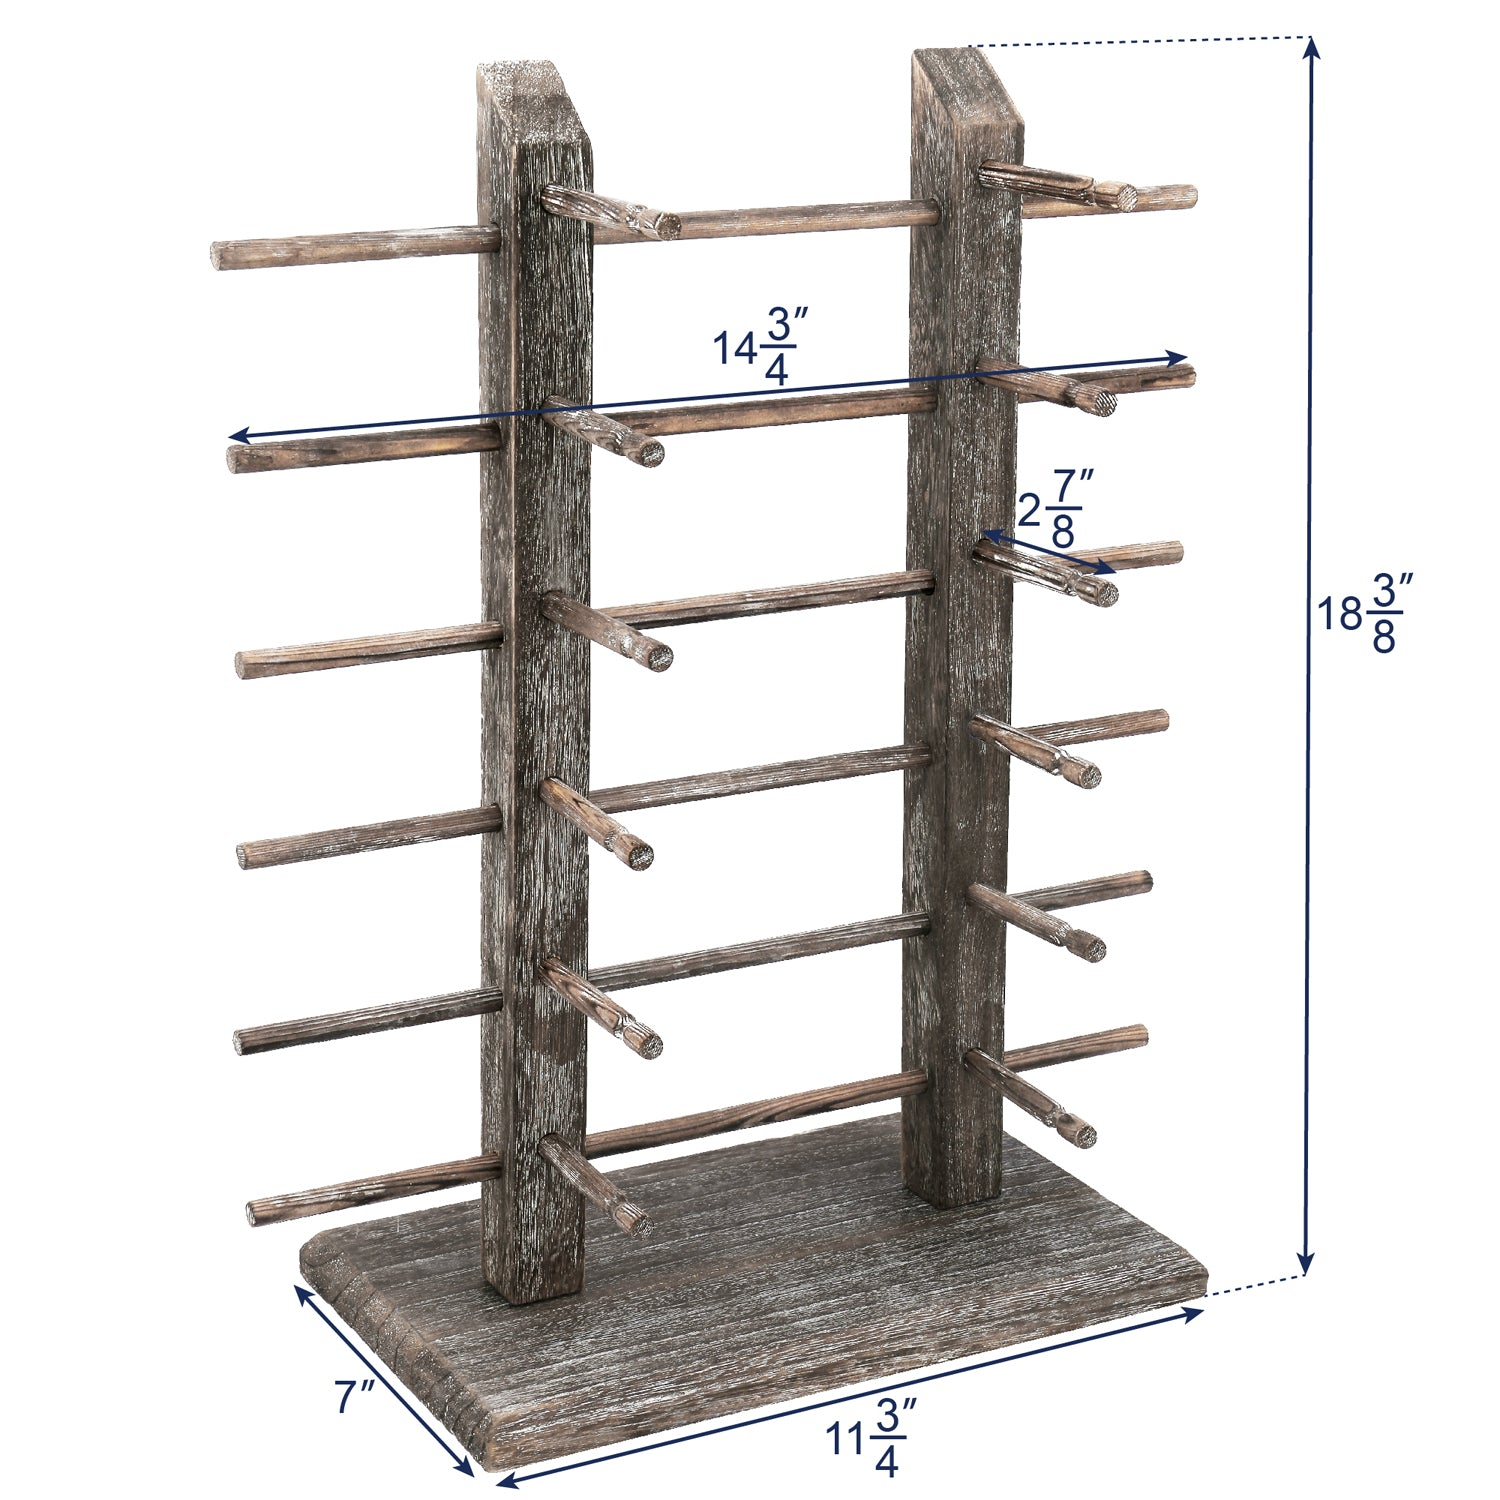 #WD-12CF Wooden Eyeglass Rack for Showcasing 12 Pairs of Glasses